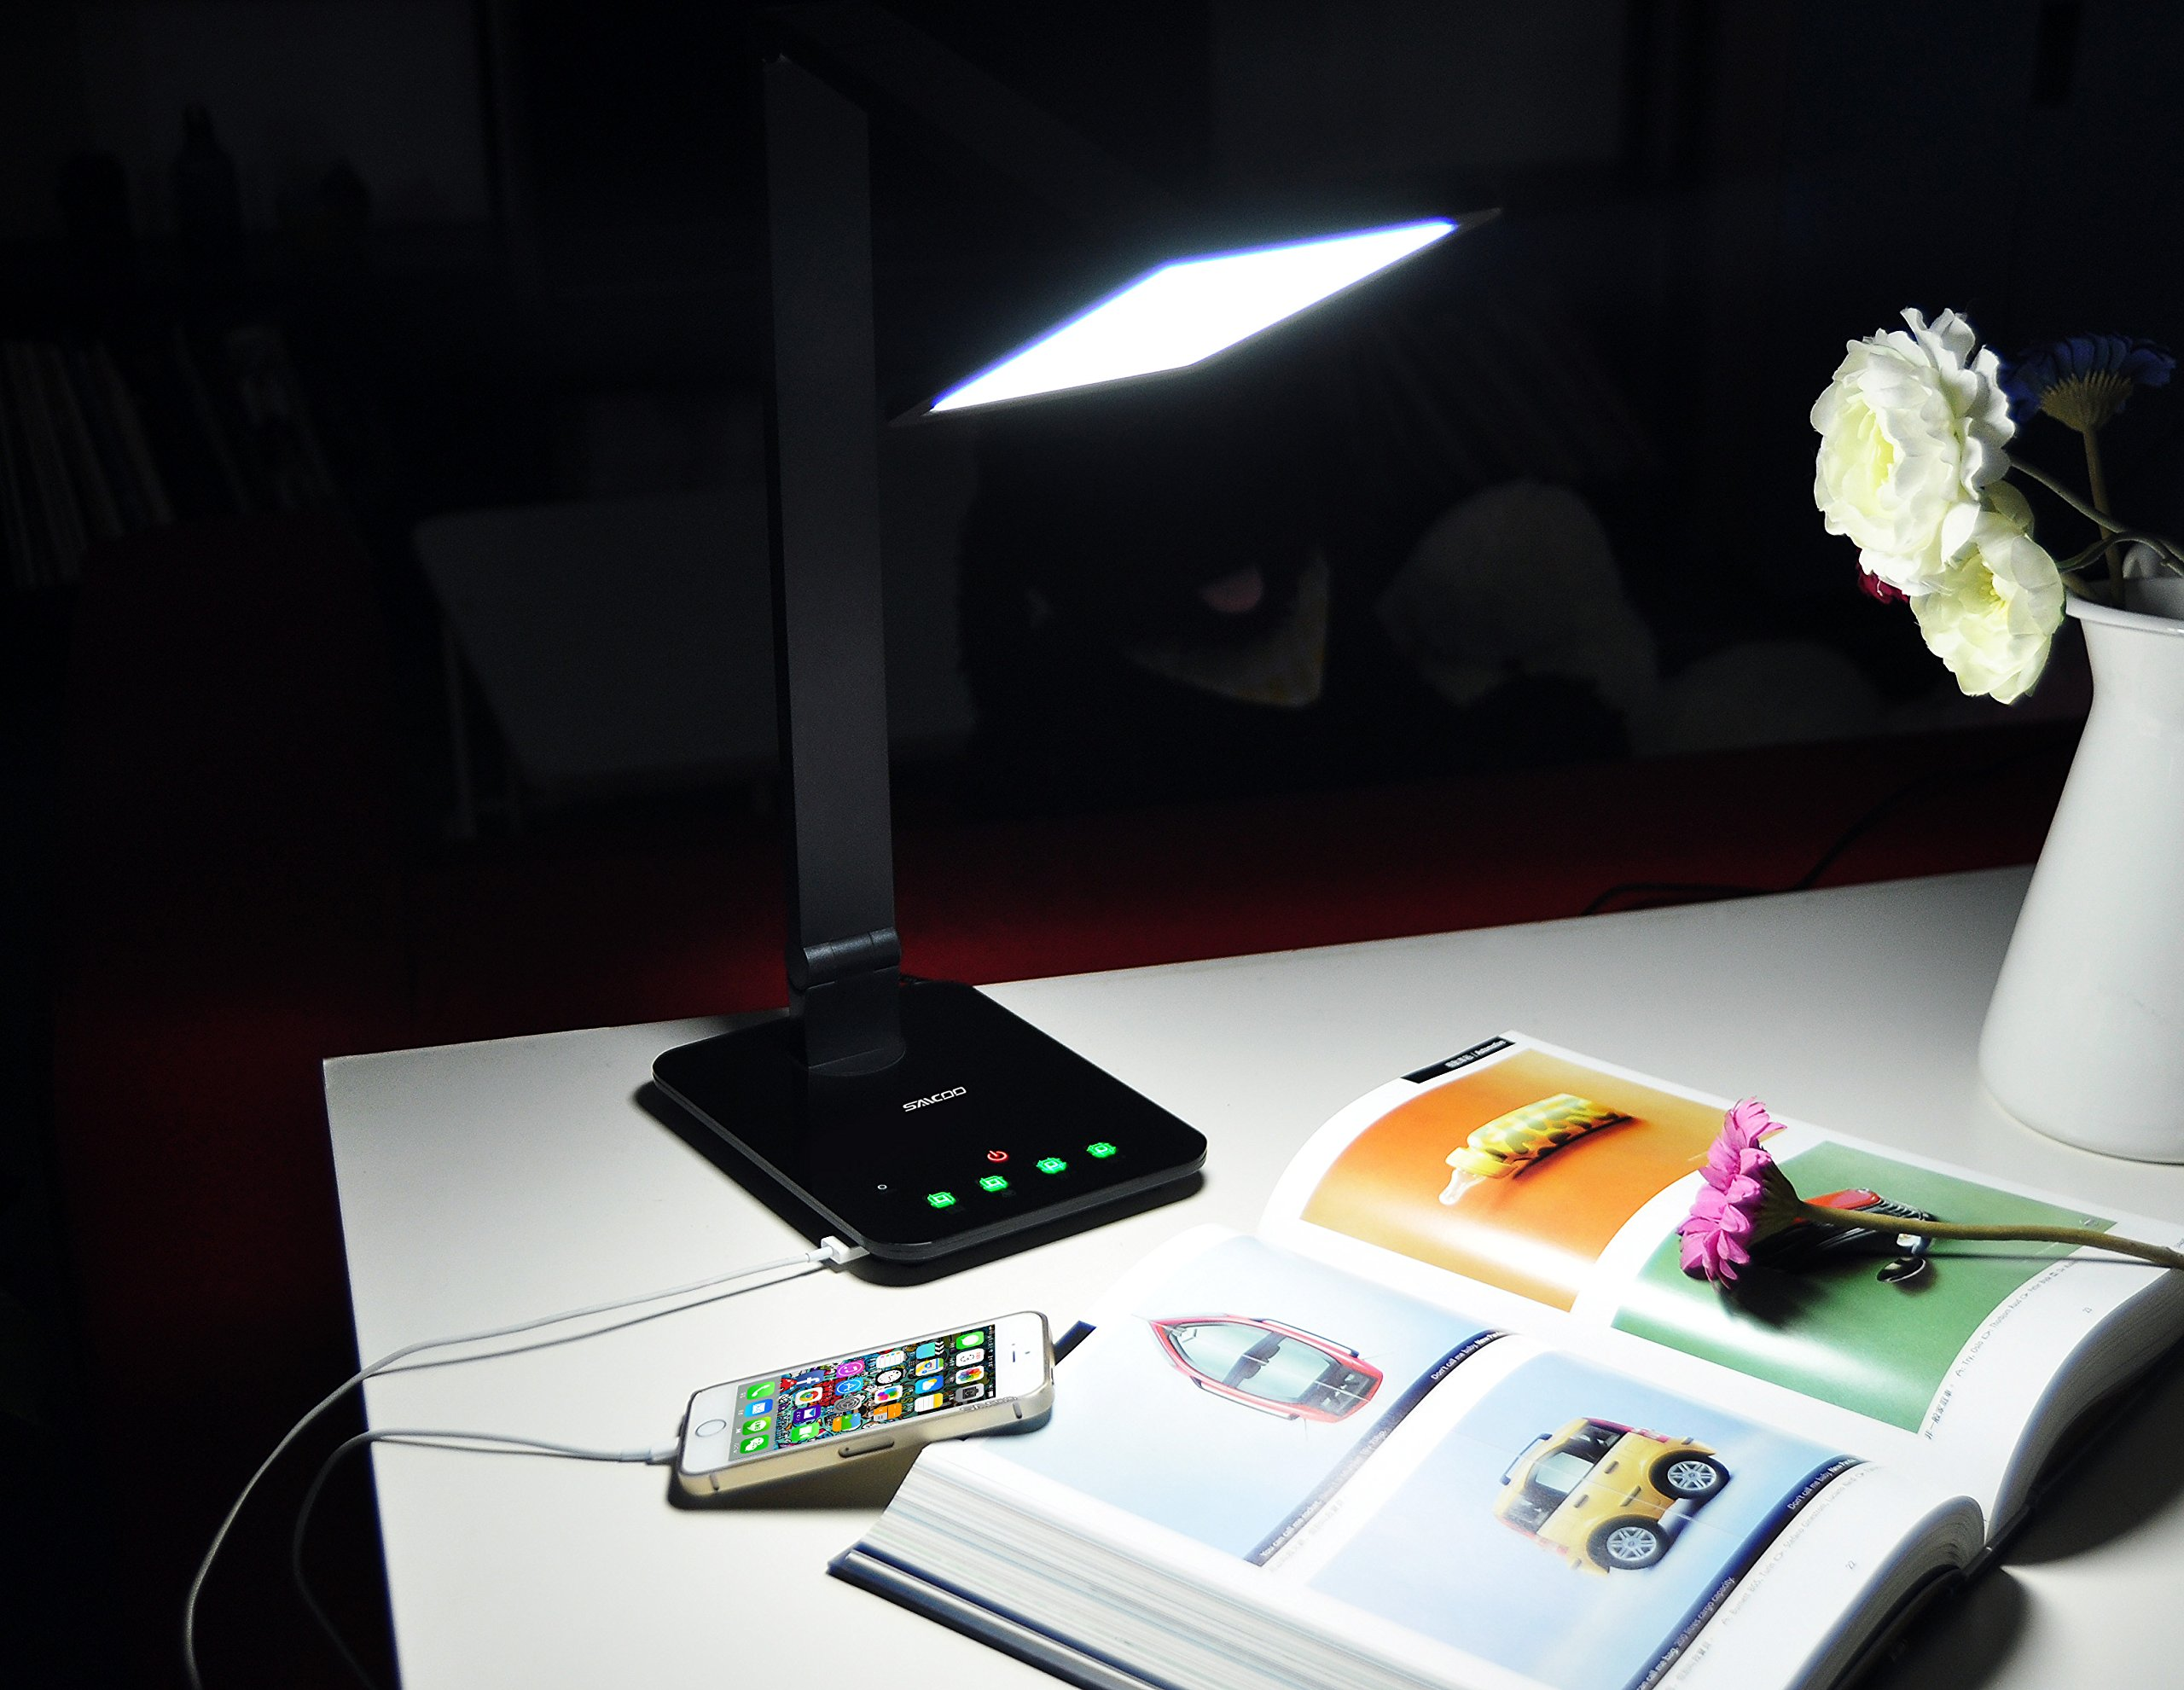 LED Desktop Lamp Saicoo Desk lamp with Large LED Panel, Seamless Dimming-Control of Brightness and Color Temperature, an USB Charging Port by saicoo (Image #7)